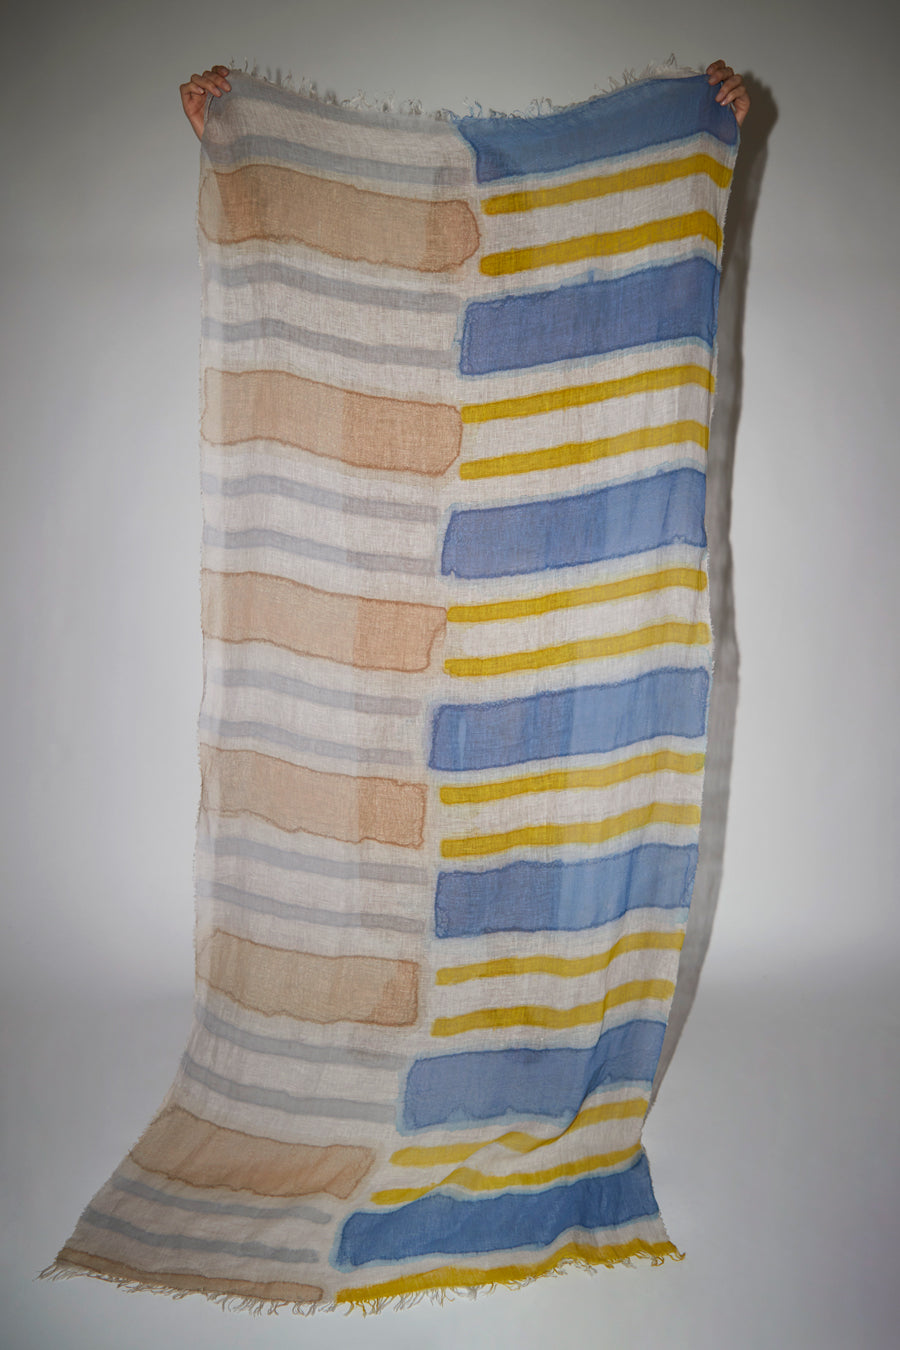 Exquisite J Painted Scarf in Patchwork Stripe